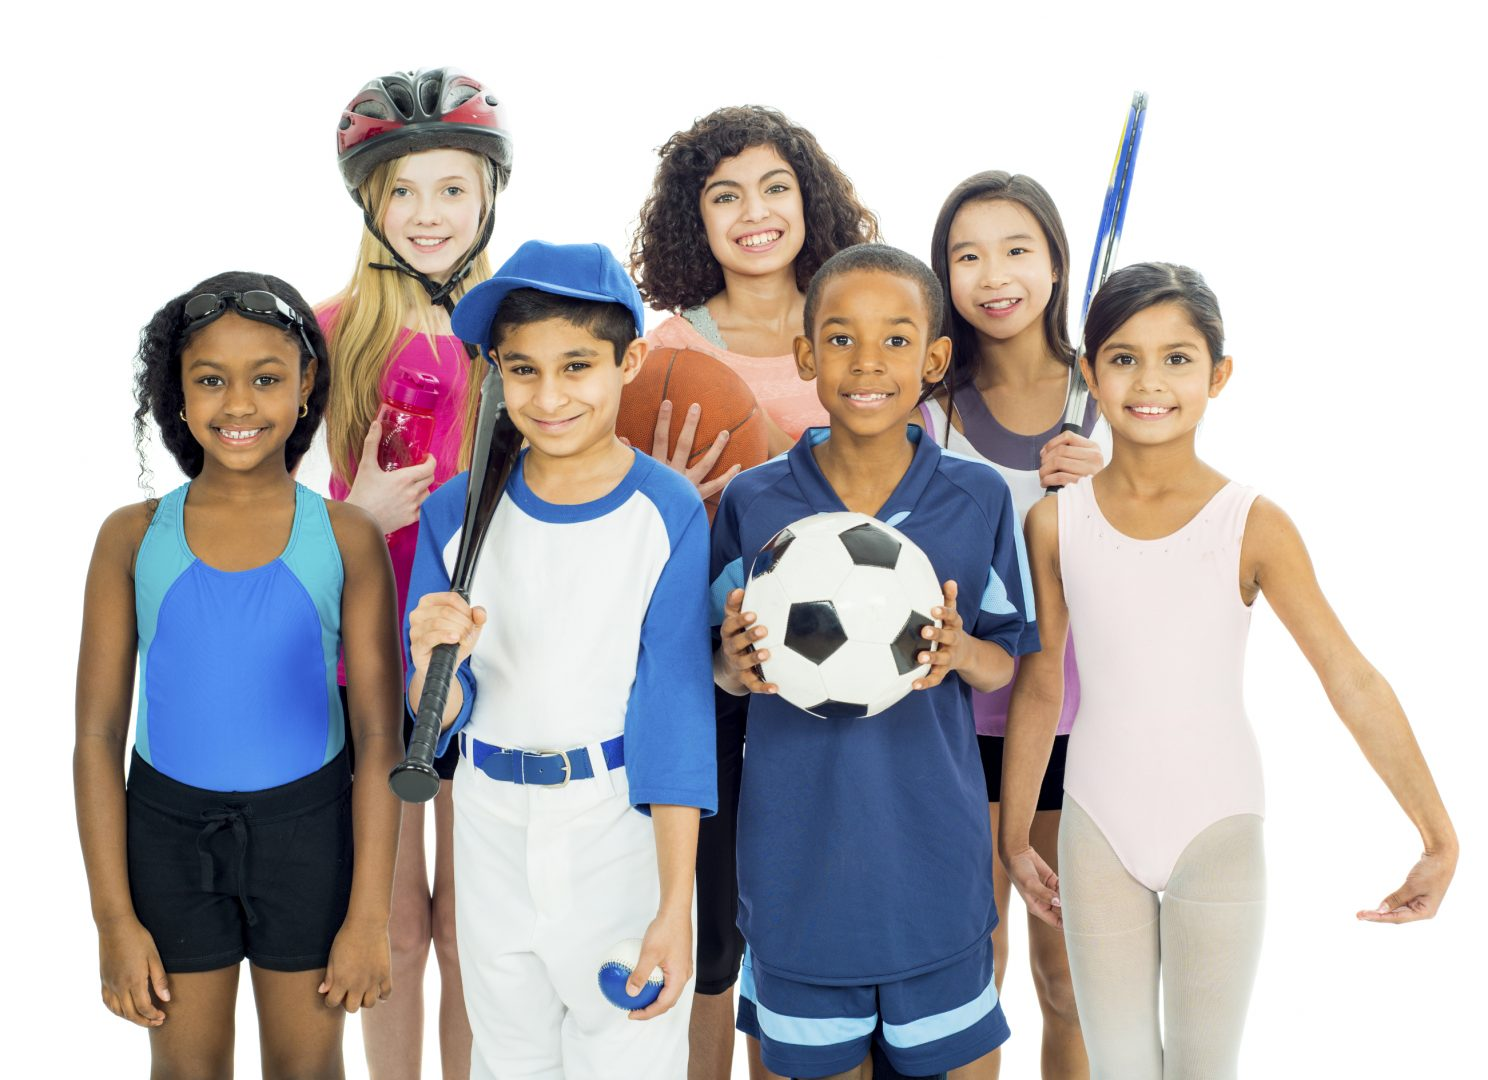 sports athletes sport youth diverse young am uniforms son looking future autism settle seem cannot anything he dekalb willingness resolution